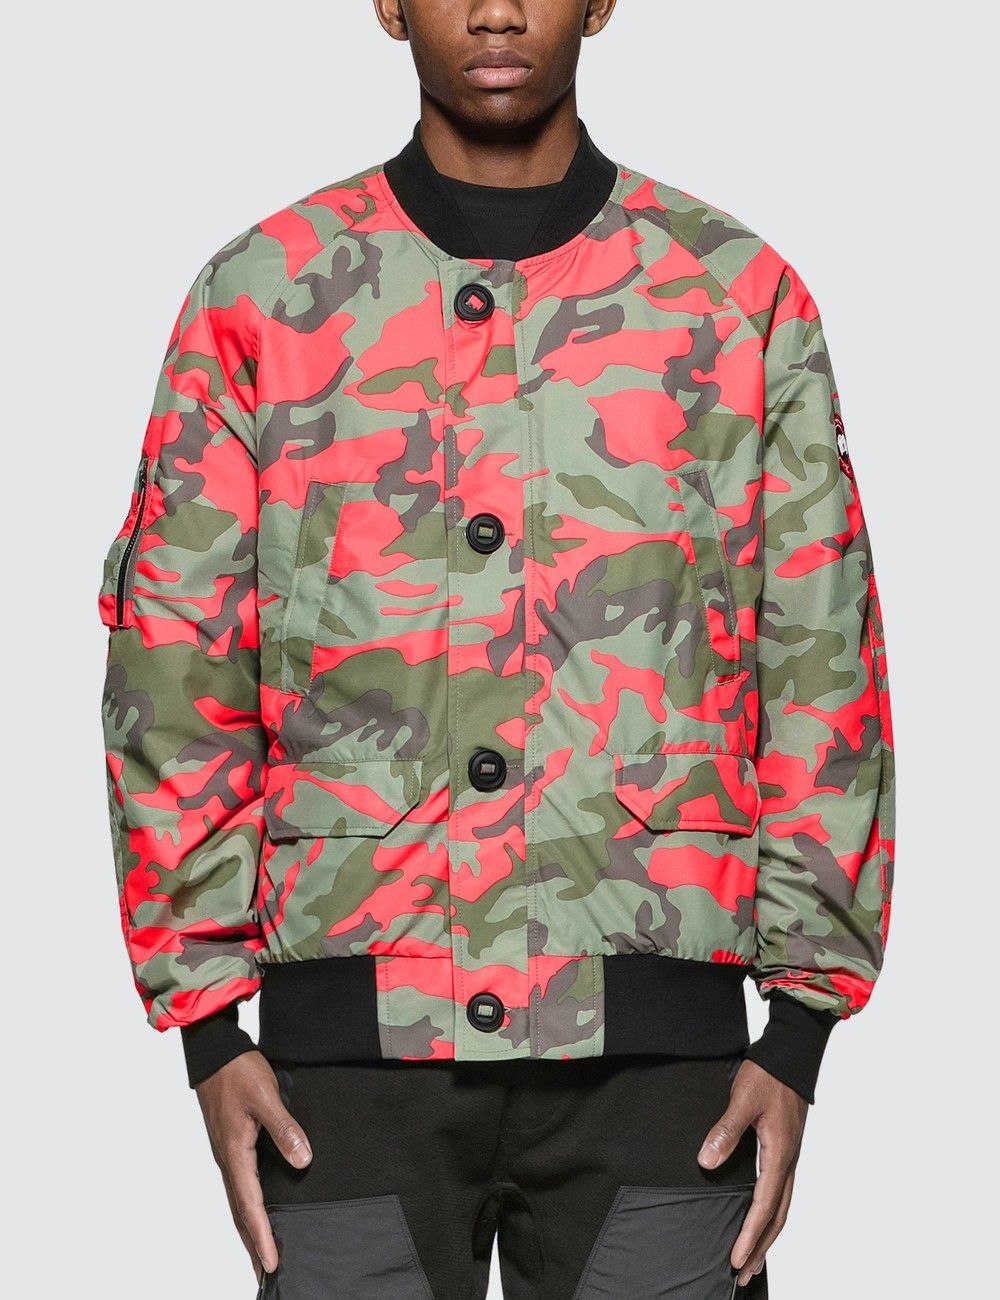 Canada Goose Fader Bomber Jacket (With images) Bomber